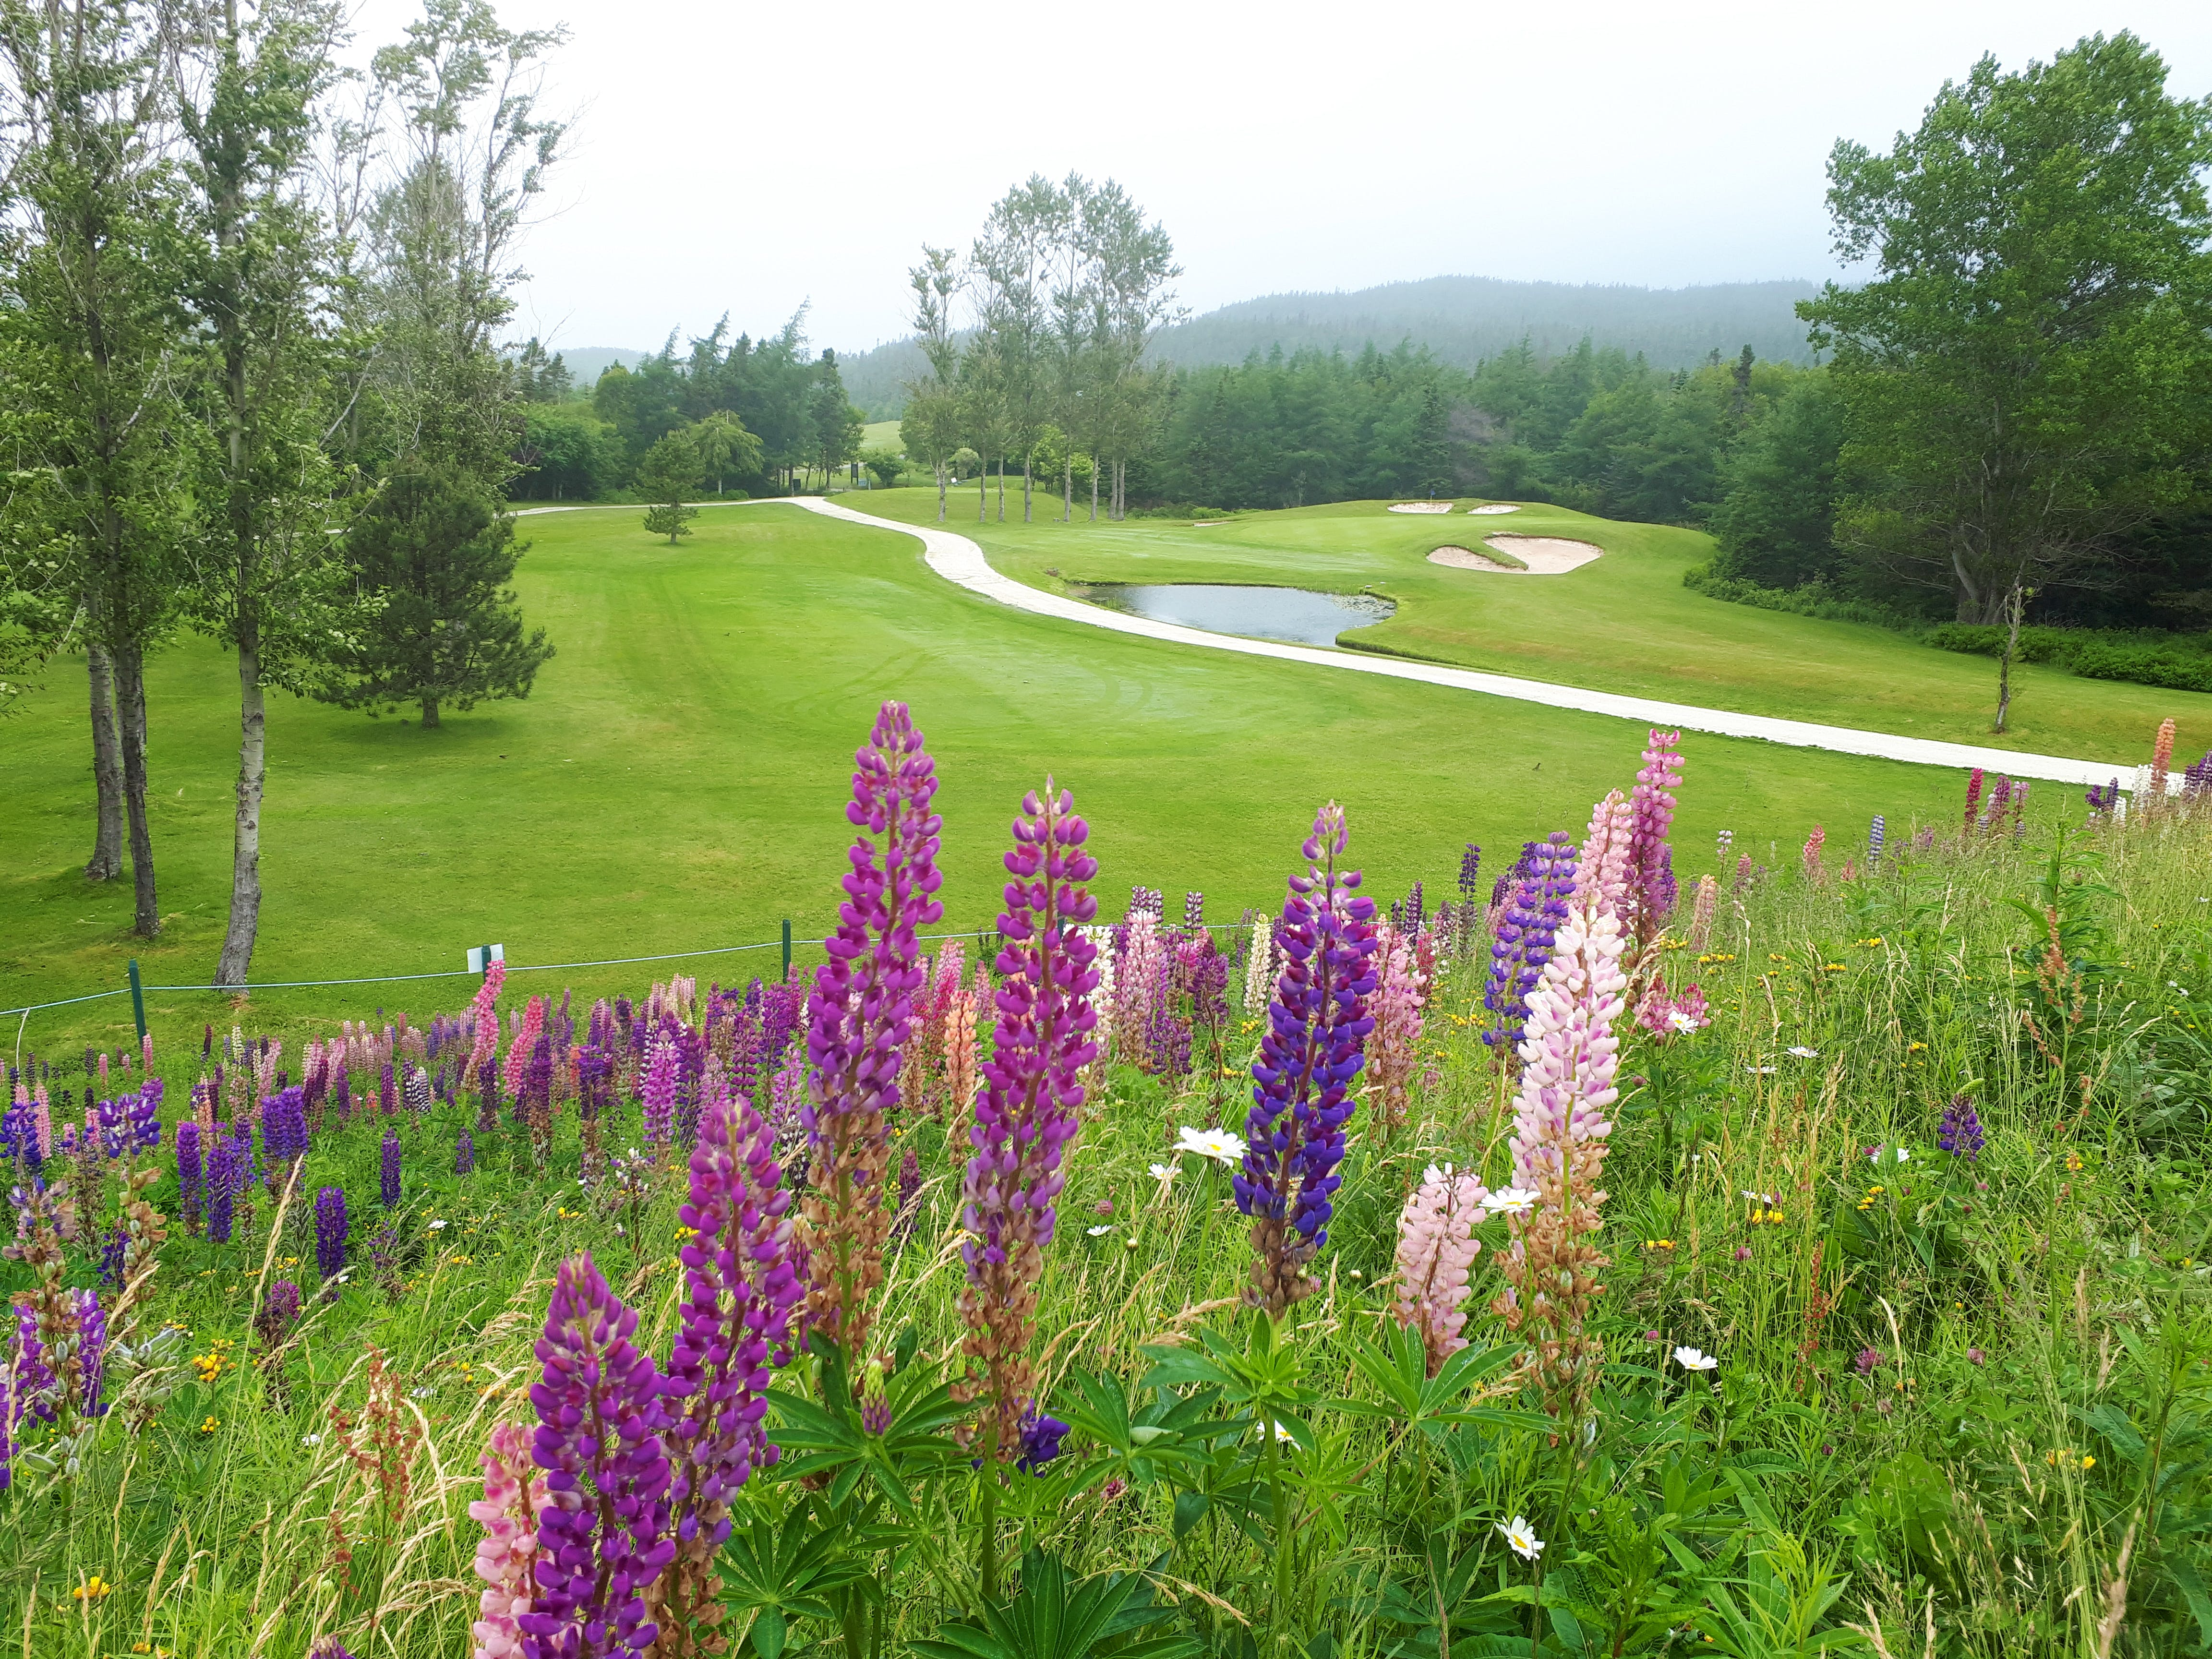 You'll find these lovely lupins looking out over the #1 tee-off at The Willows in Holyrood, N.L.  Pat Walsh said it was a cloudy, misty morning for a round of golf.  I think the lupins are there to take the golfers' minds off that tricky-looking green, surrounded by sand and water.